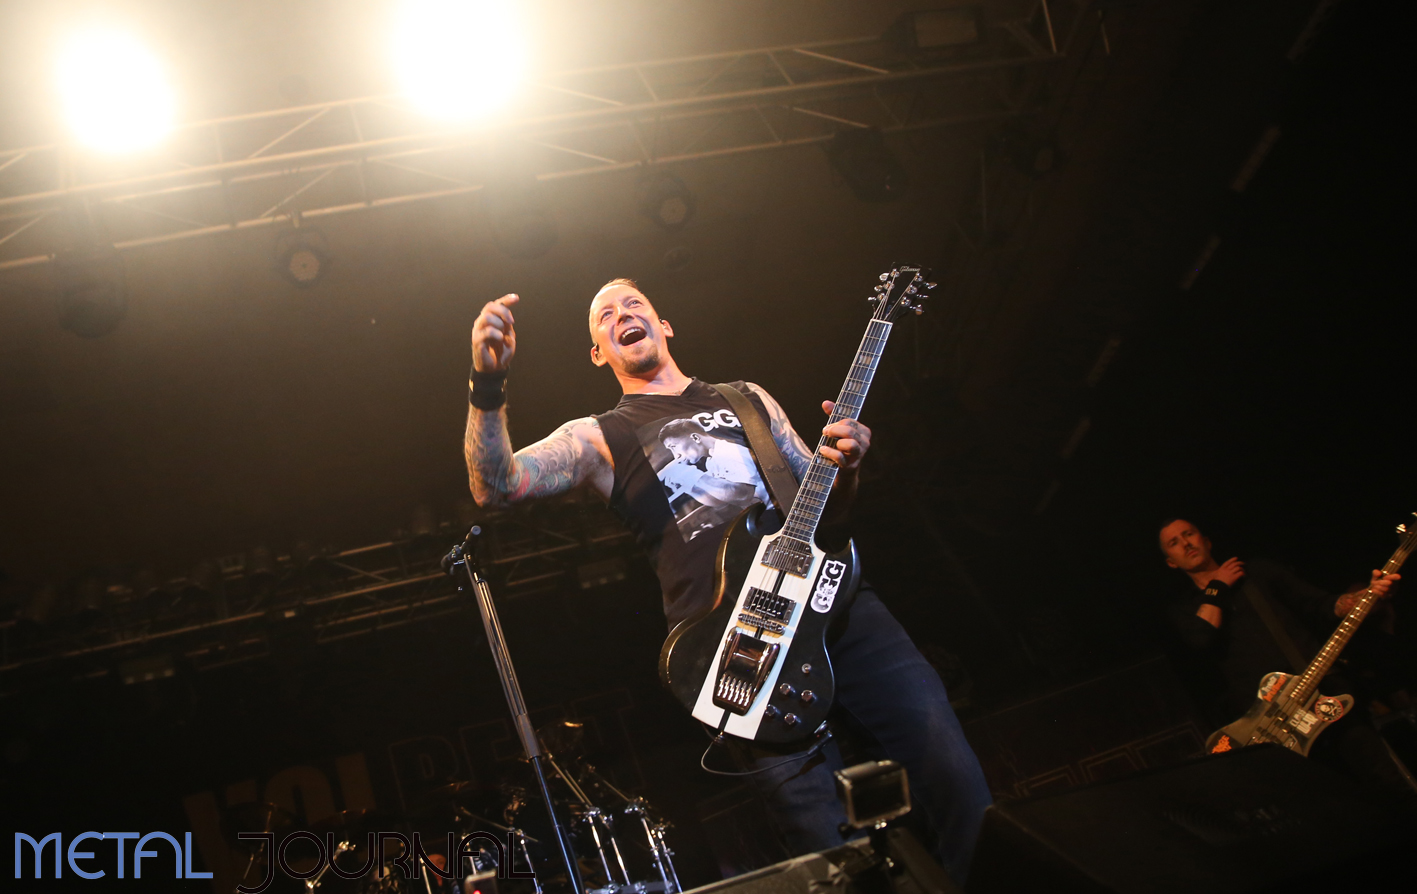 volbeat - metal journal pic 6